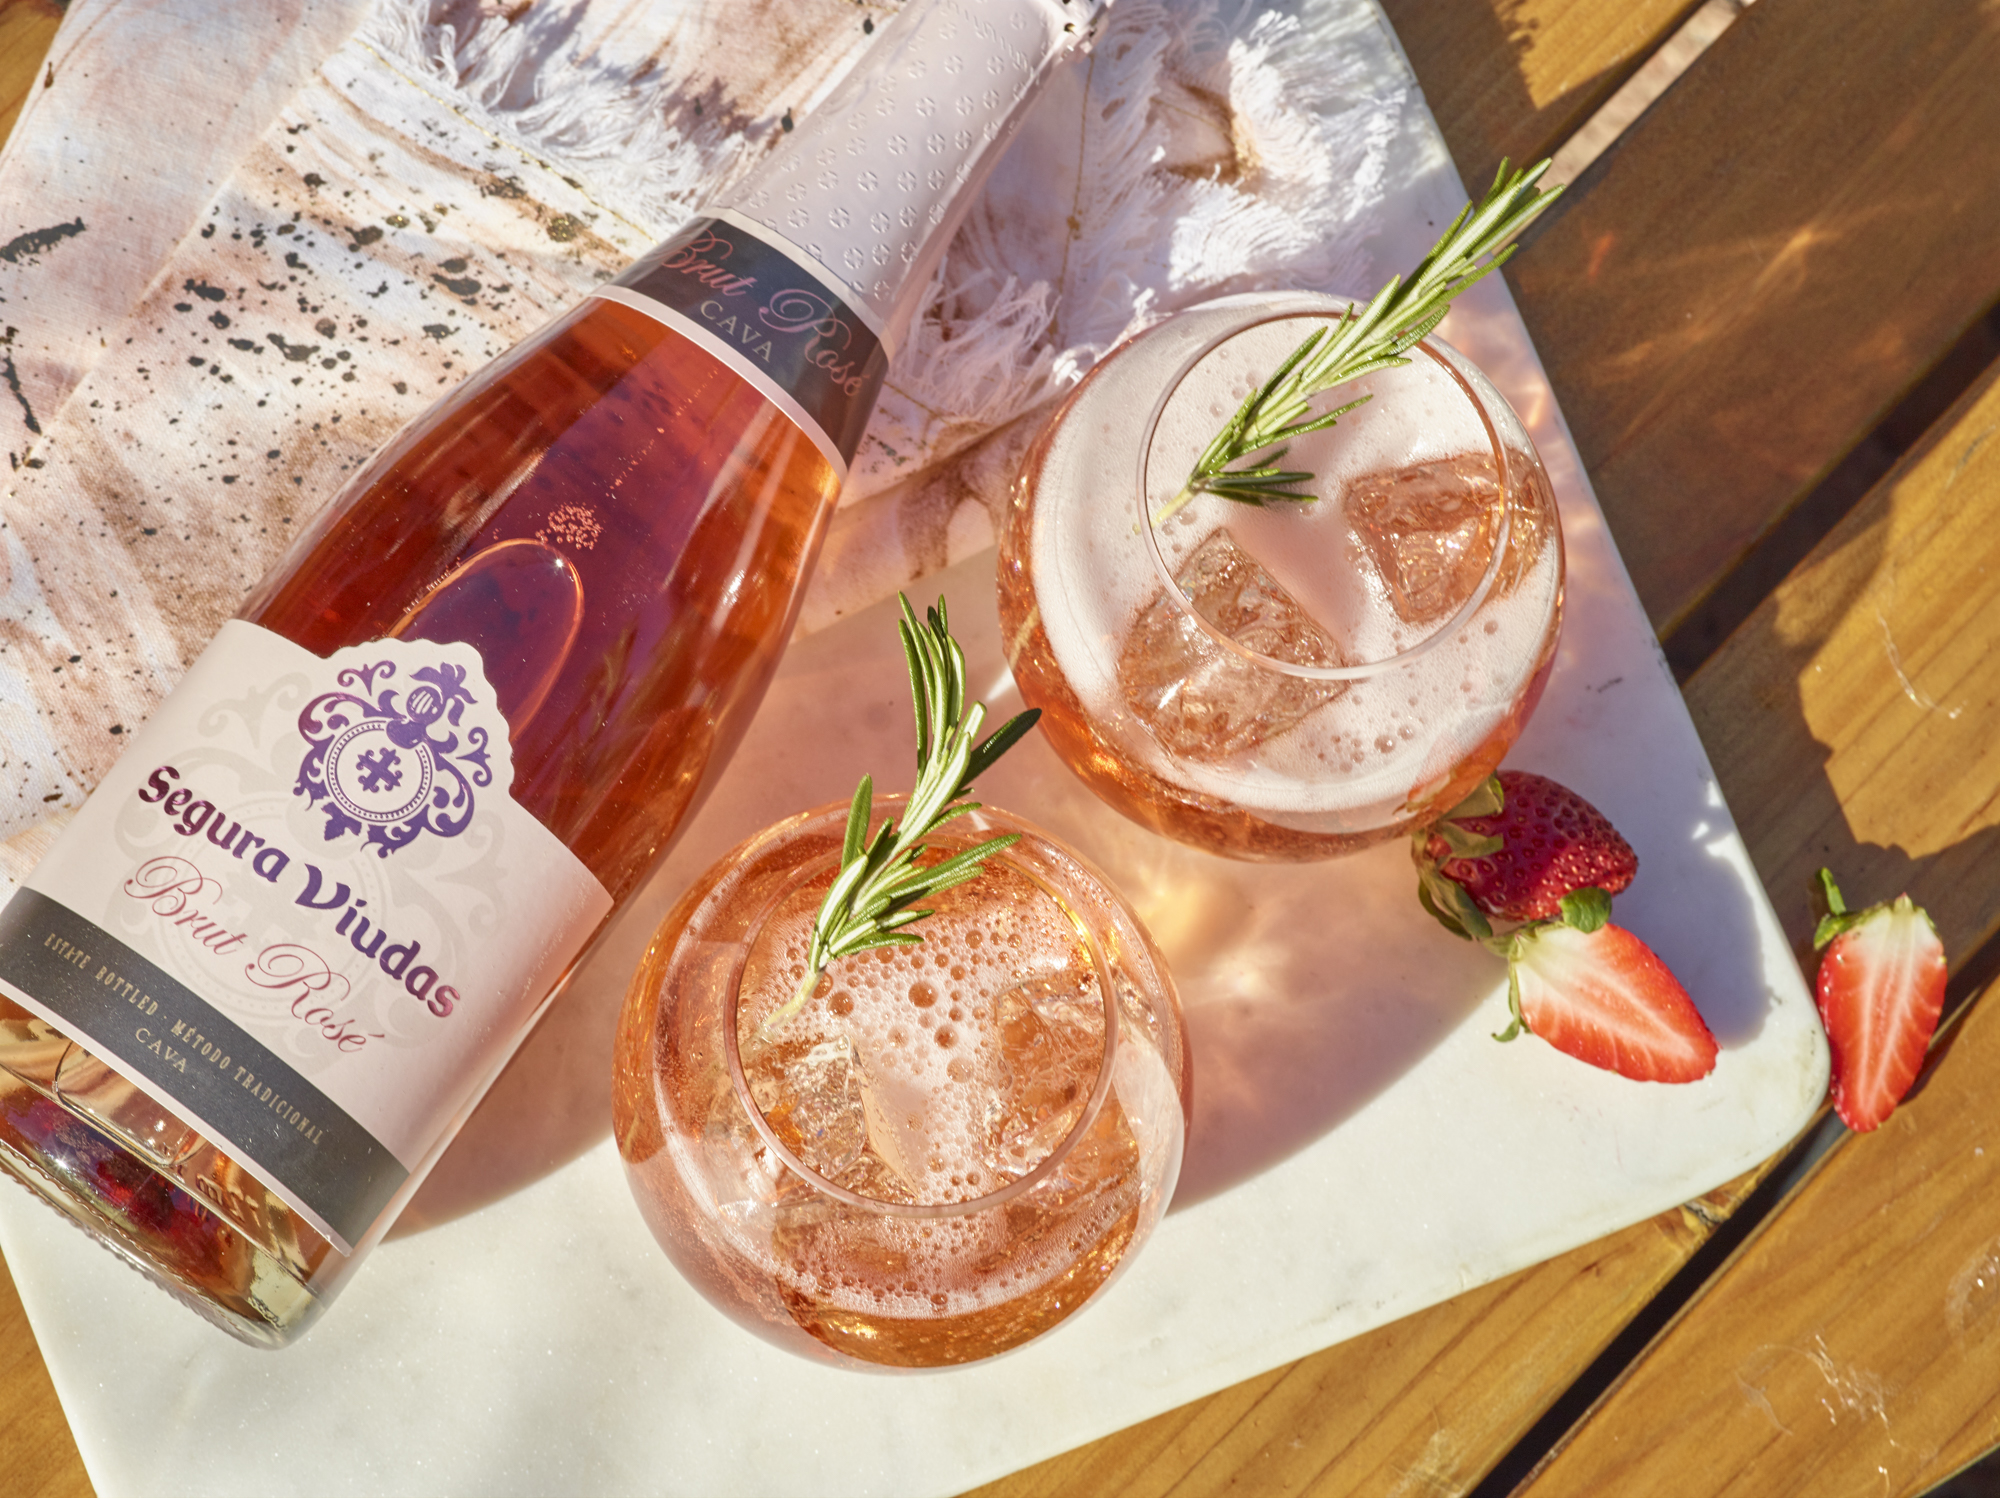 """Segura Viudas Cava - Heather Mulligan,                            Brand Manager Segura Viudas Cava """"We worked with Sid for our Segura Viudas shoot. He was so amazing, he really grinded it out for three days with us. His energy was superb and we got really great end results"""""""